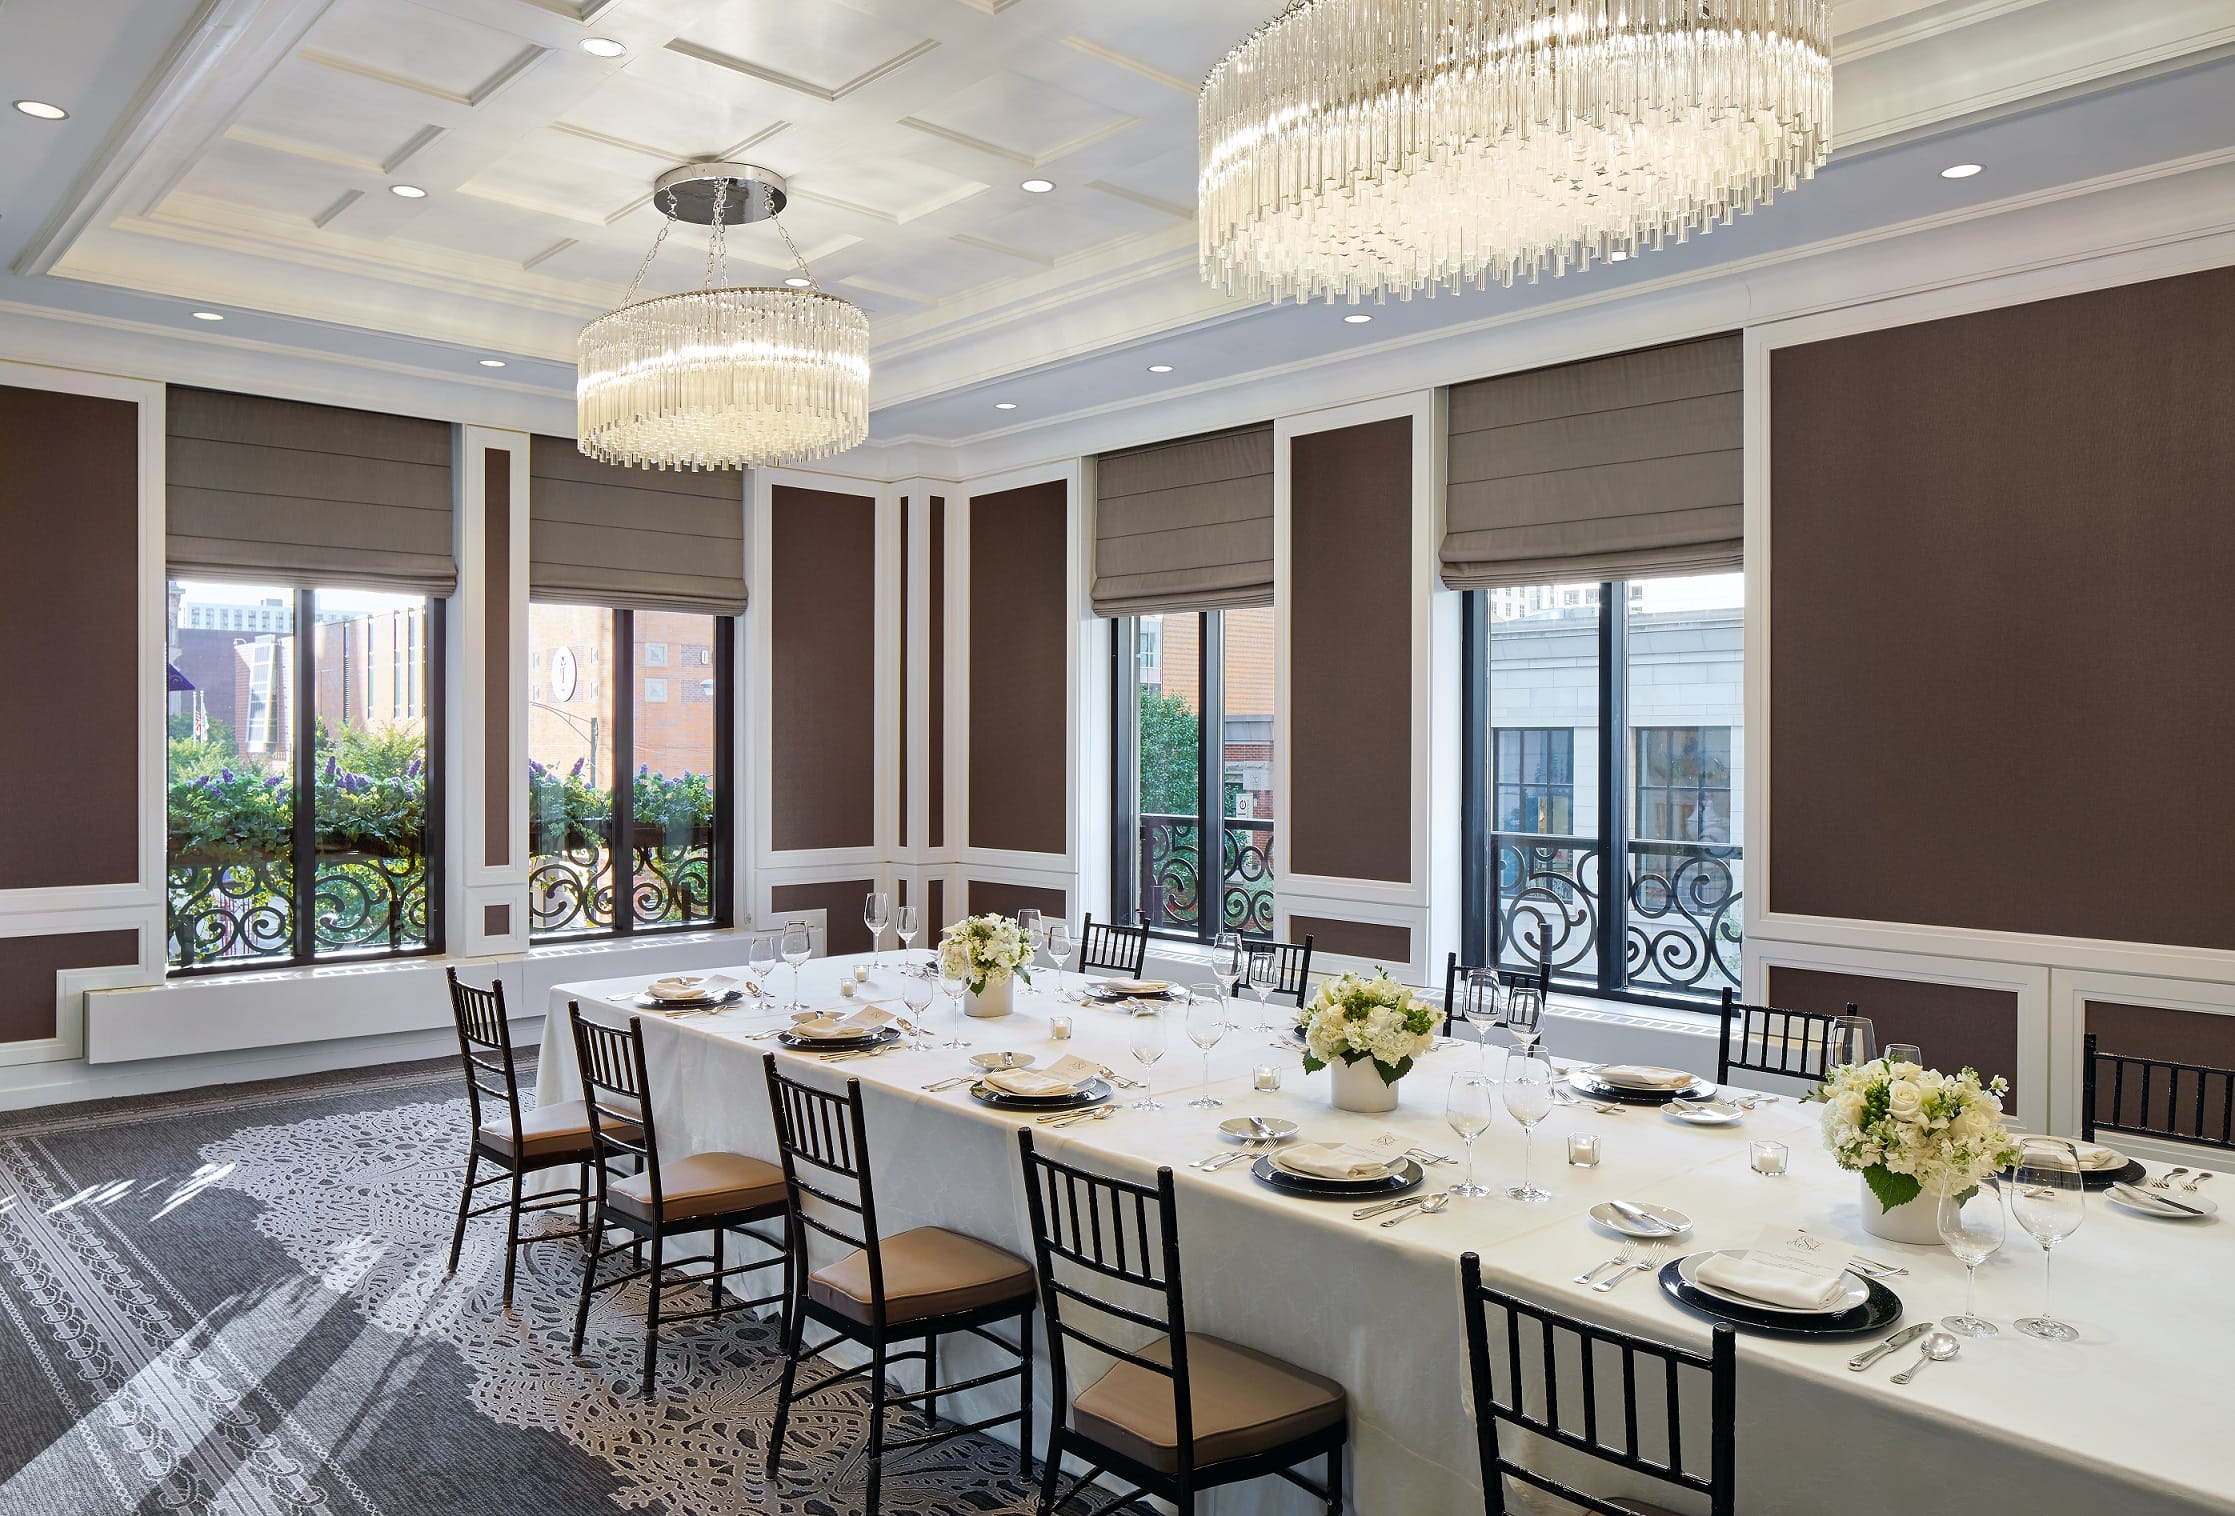 Meetings events photos waldorf astoria chicago for Best private dining rooms chicago